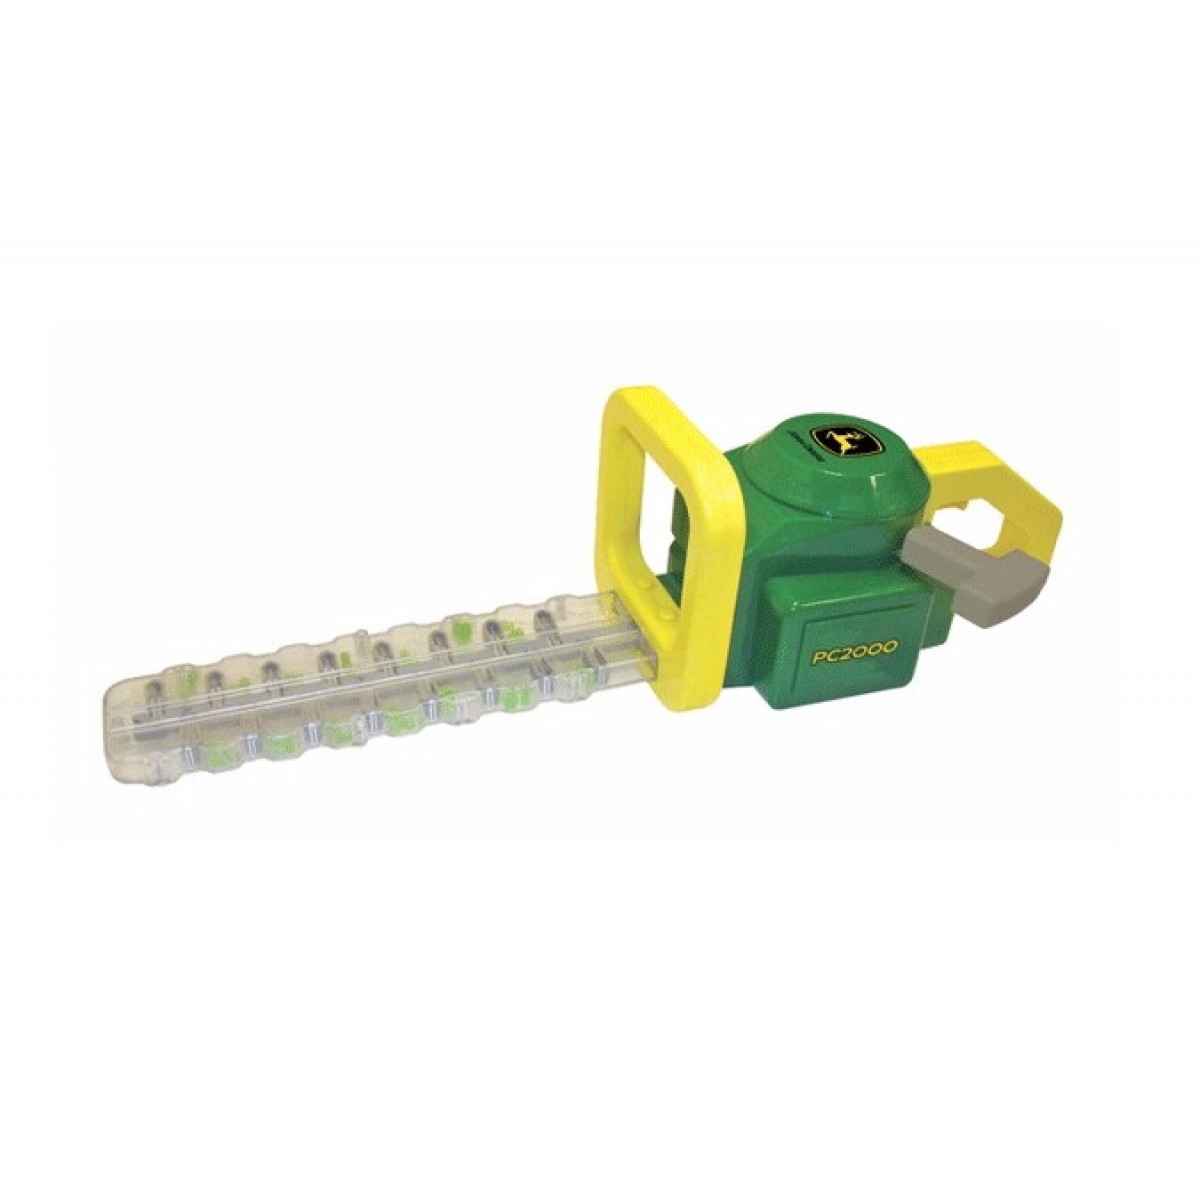 John Deere Power Hedge Trimmer - Role Play Tools ...